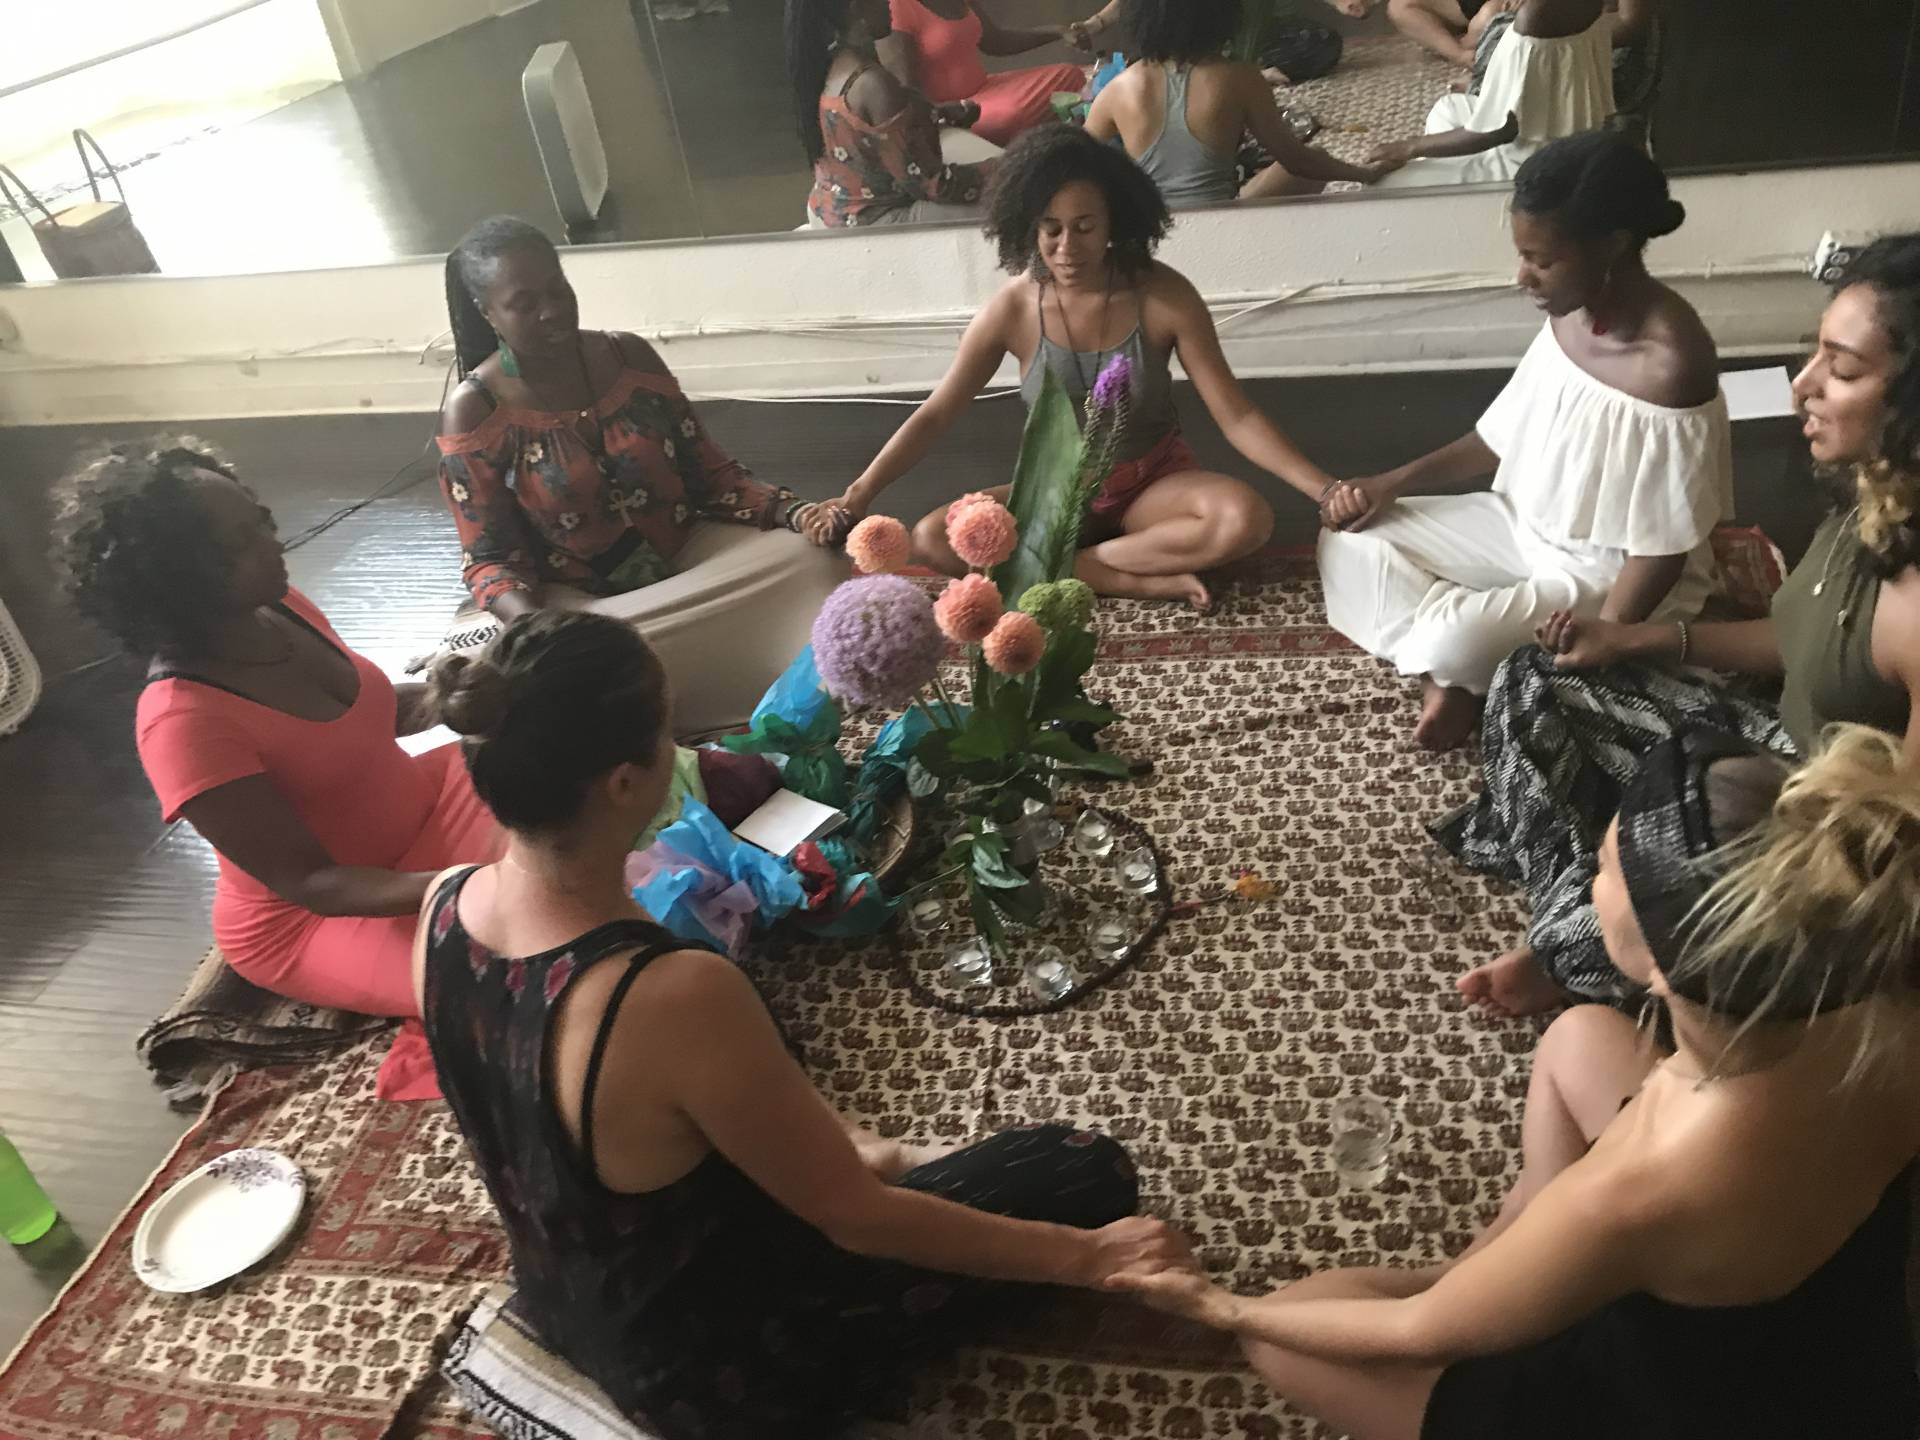 Our sacred sisterhood circles. Some of my most precious memories are of us gathered here in this circle. It's given me a taste of unconditional love.